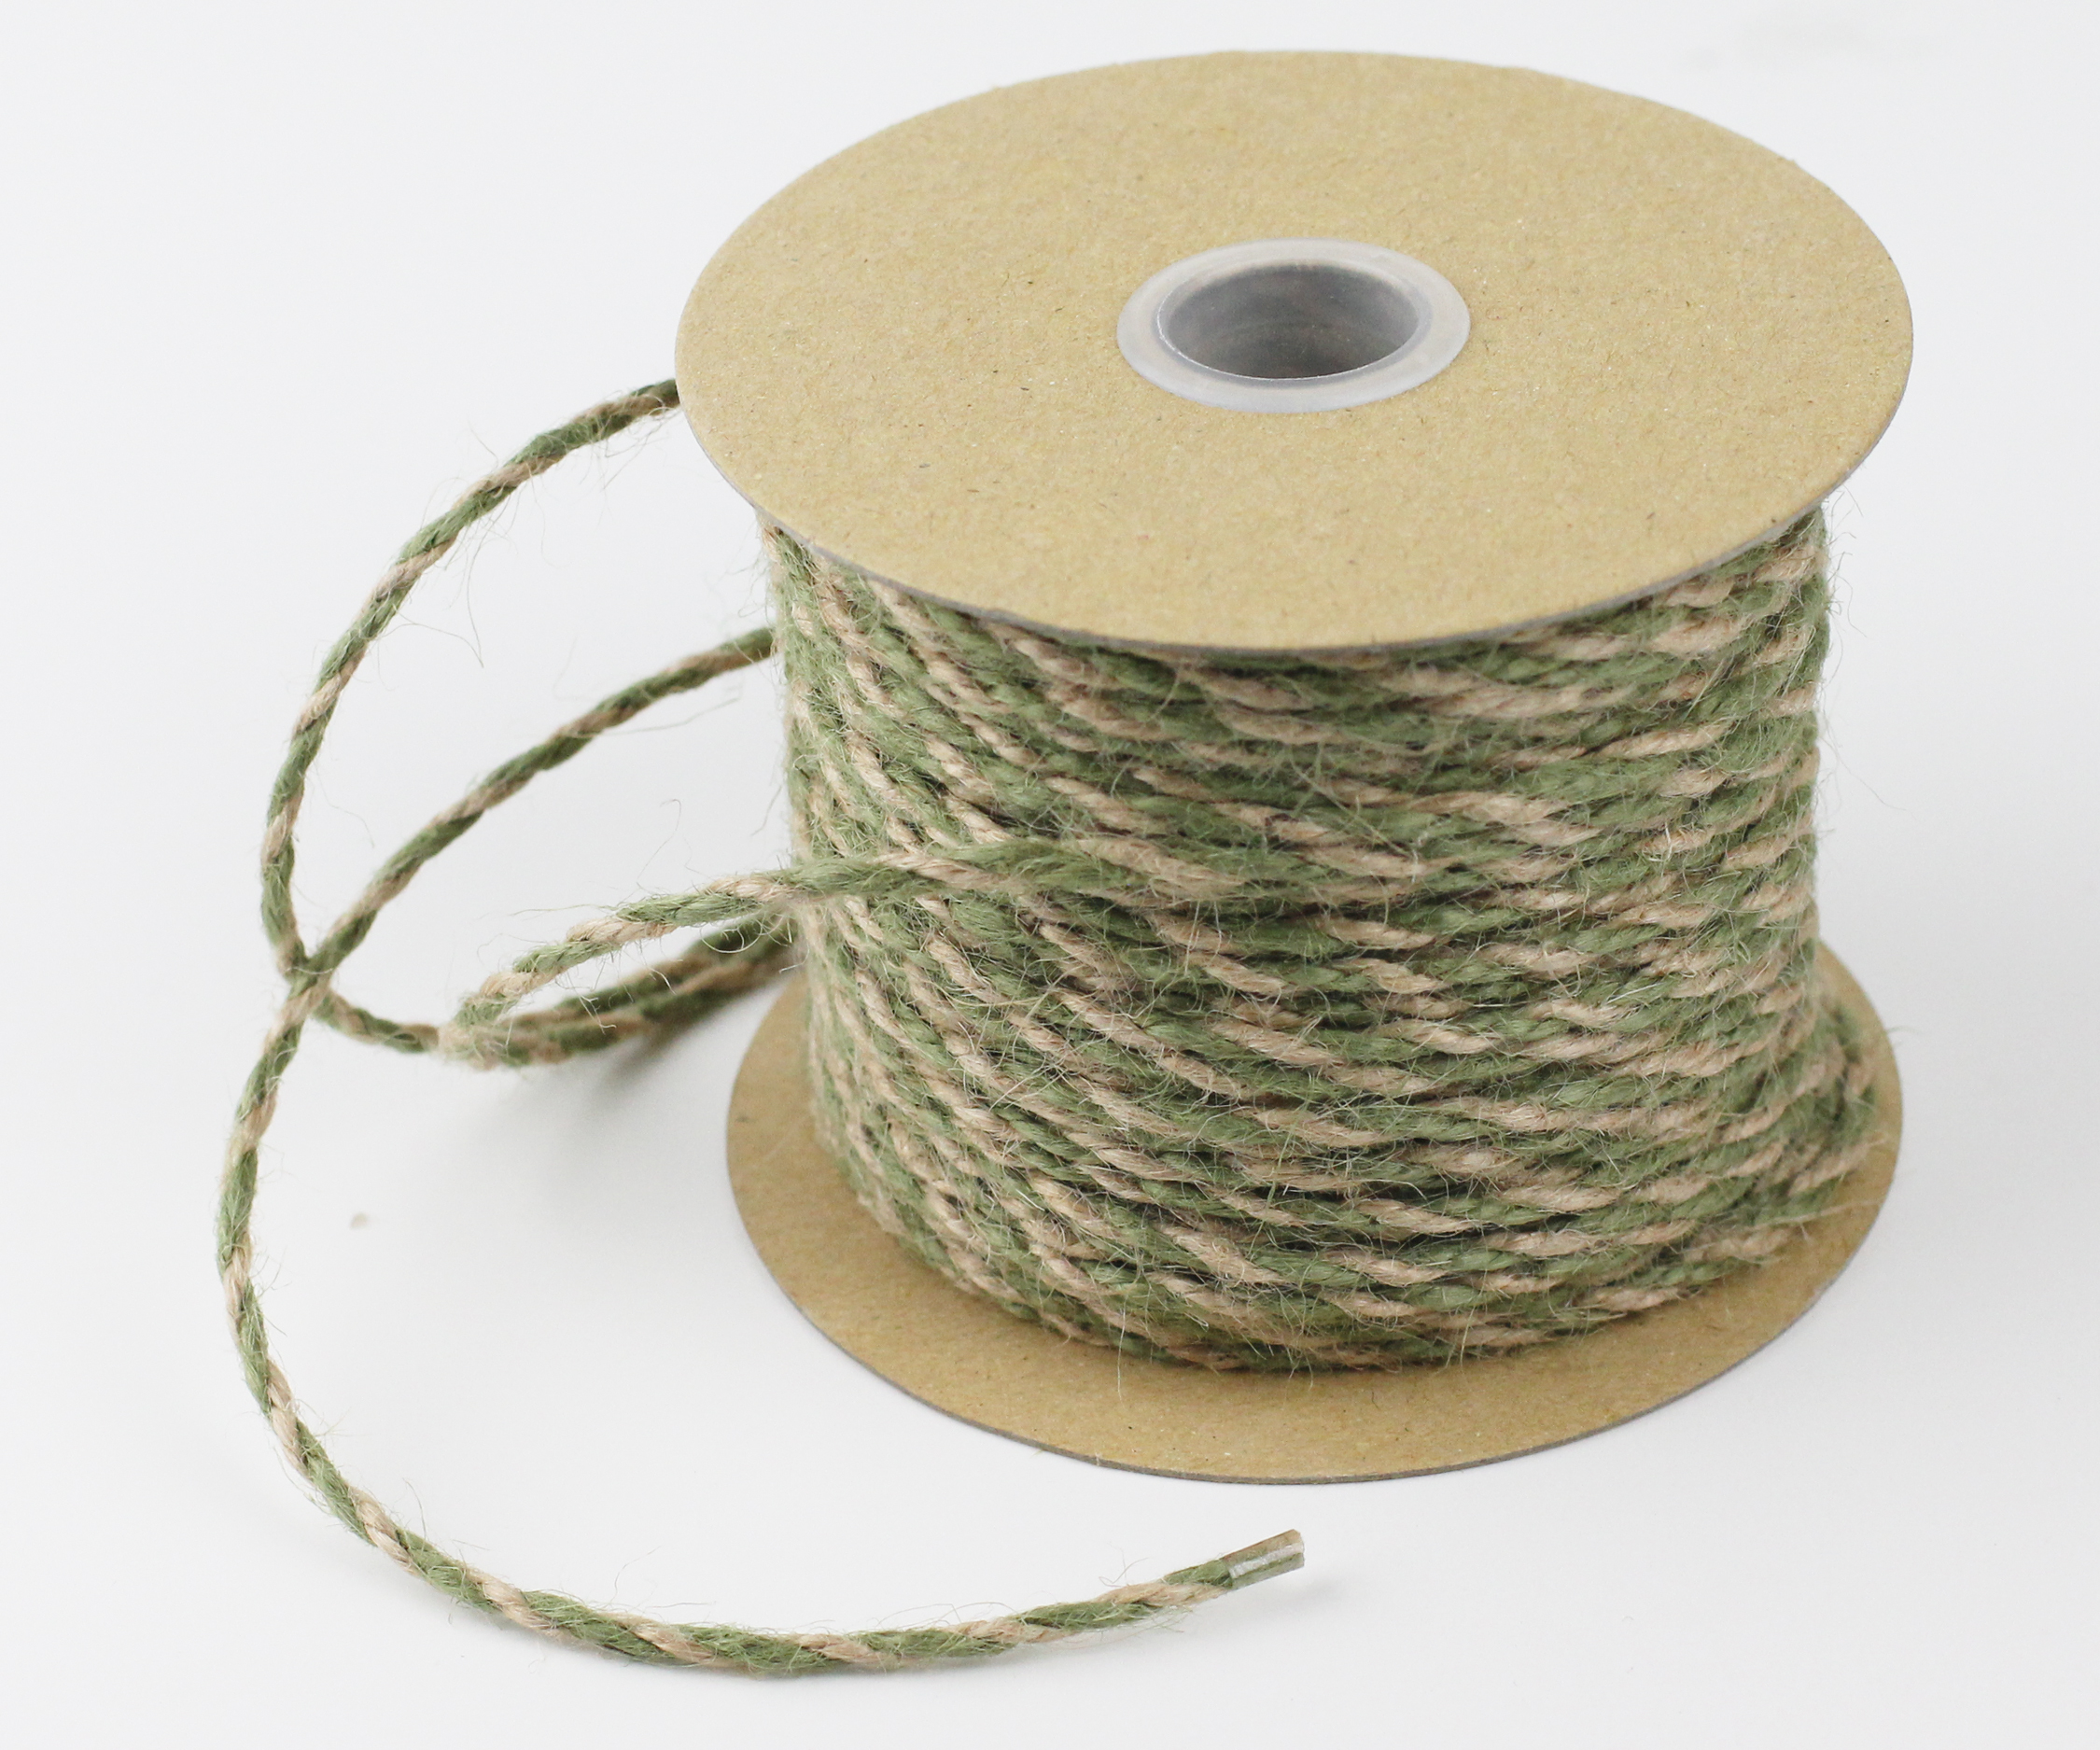 2.5 mm Moss/Natural Jute Twine - 50 Yards